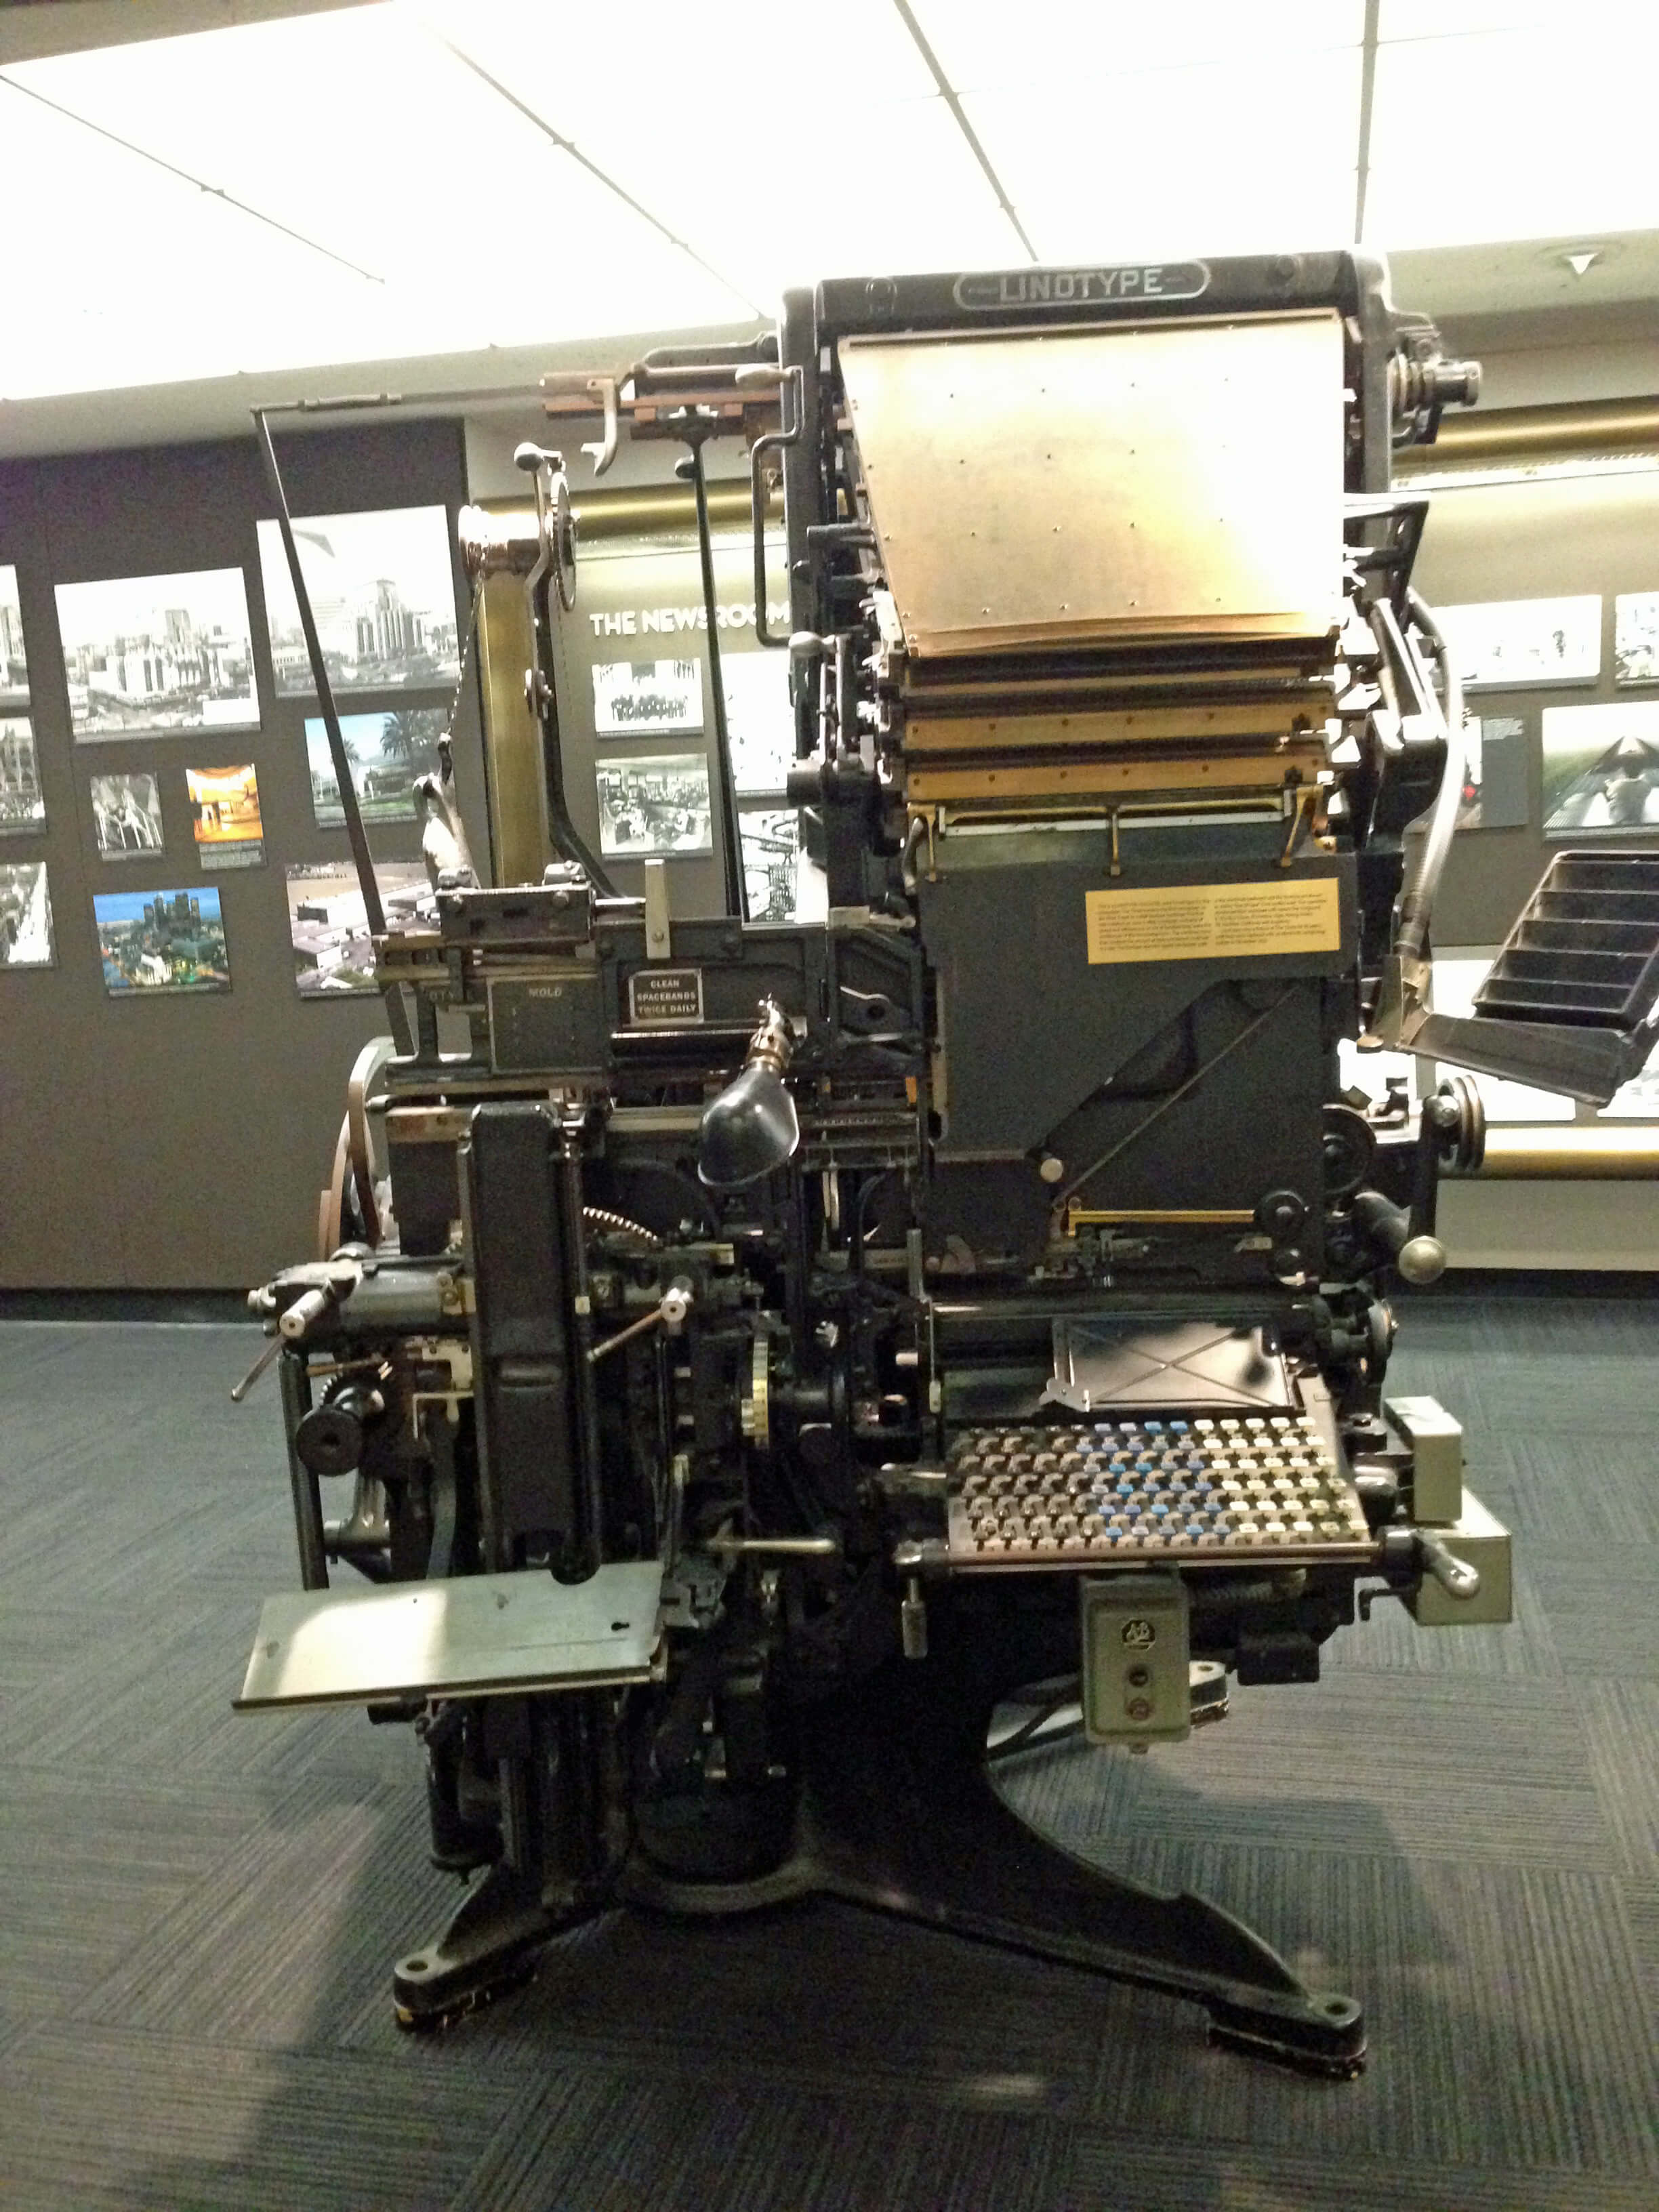 A linotype machine. This is how they USED to print newspapers!